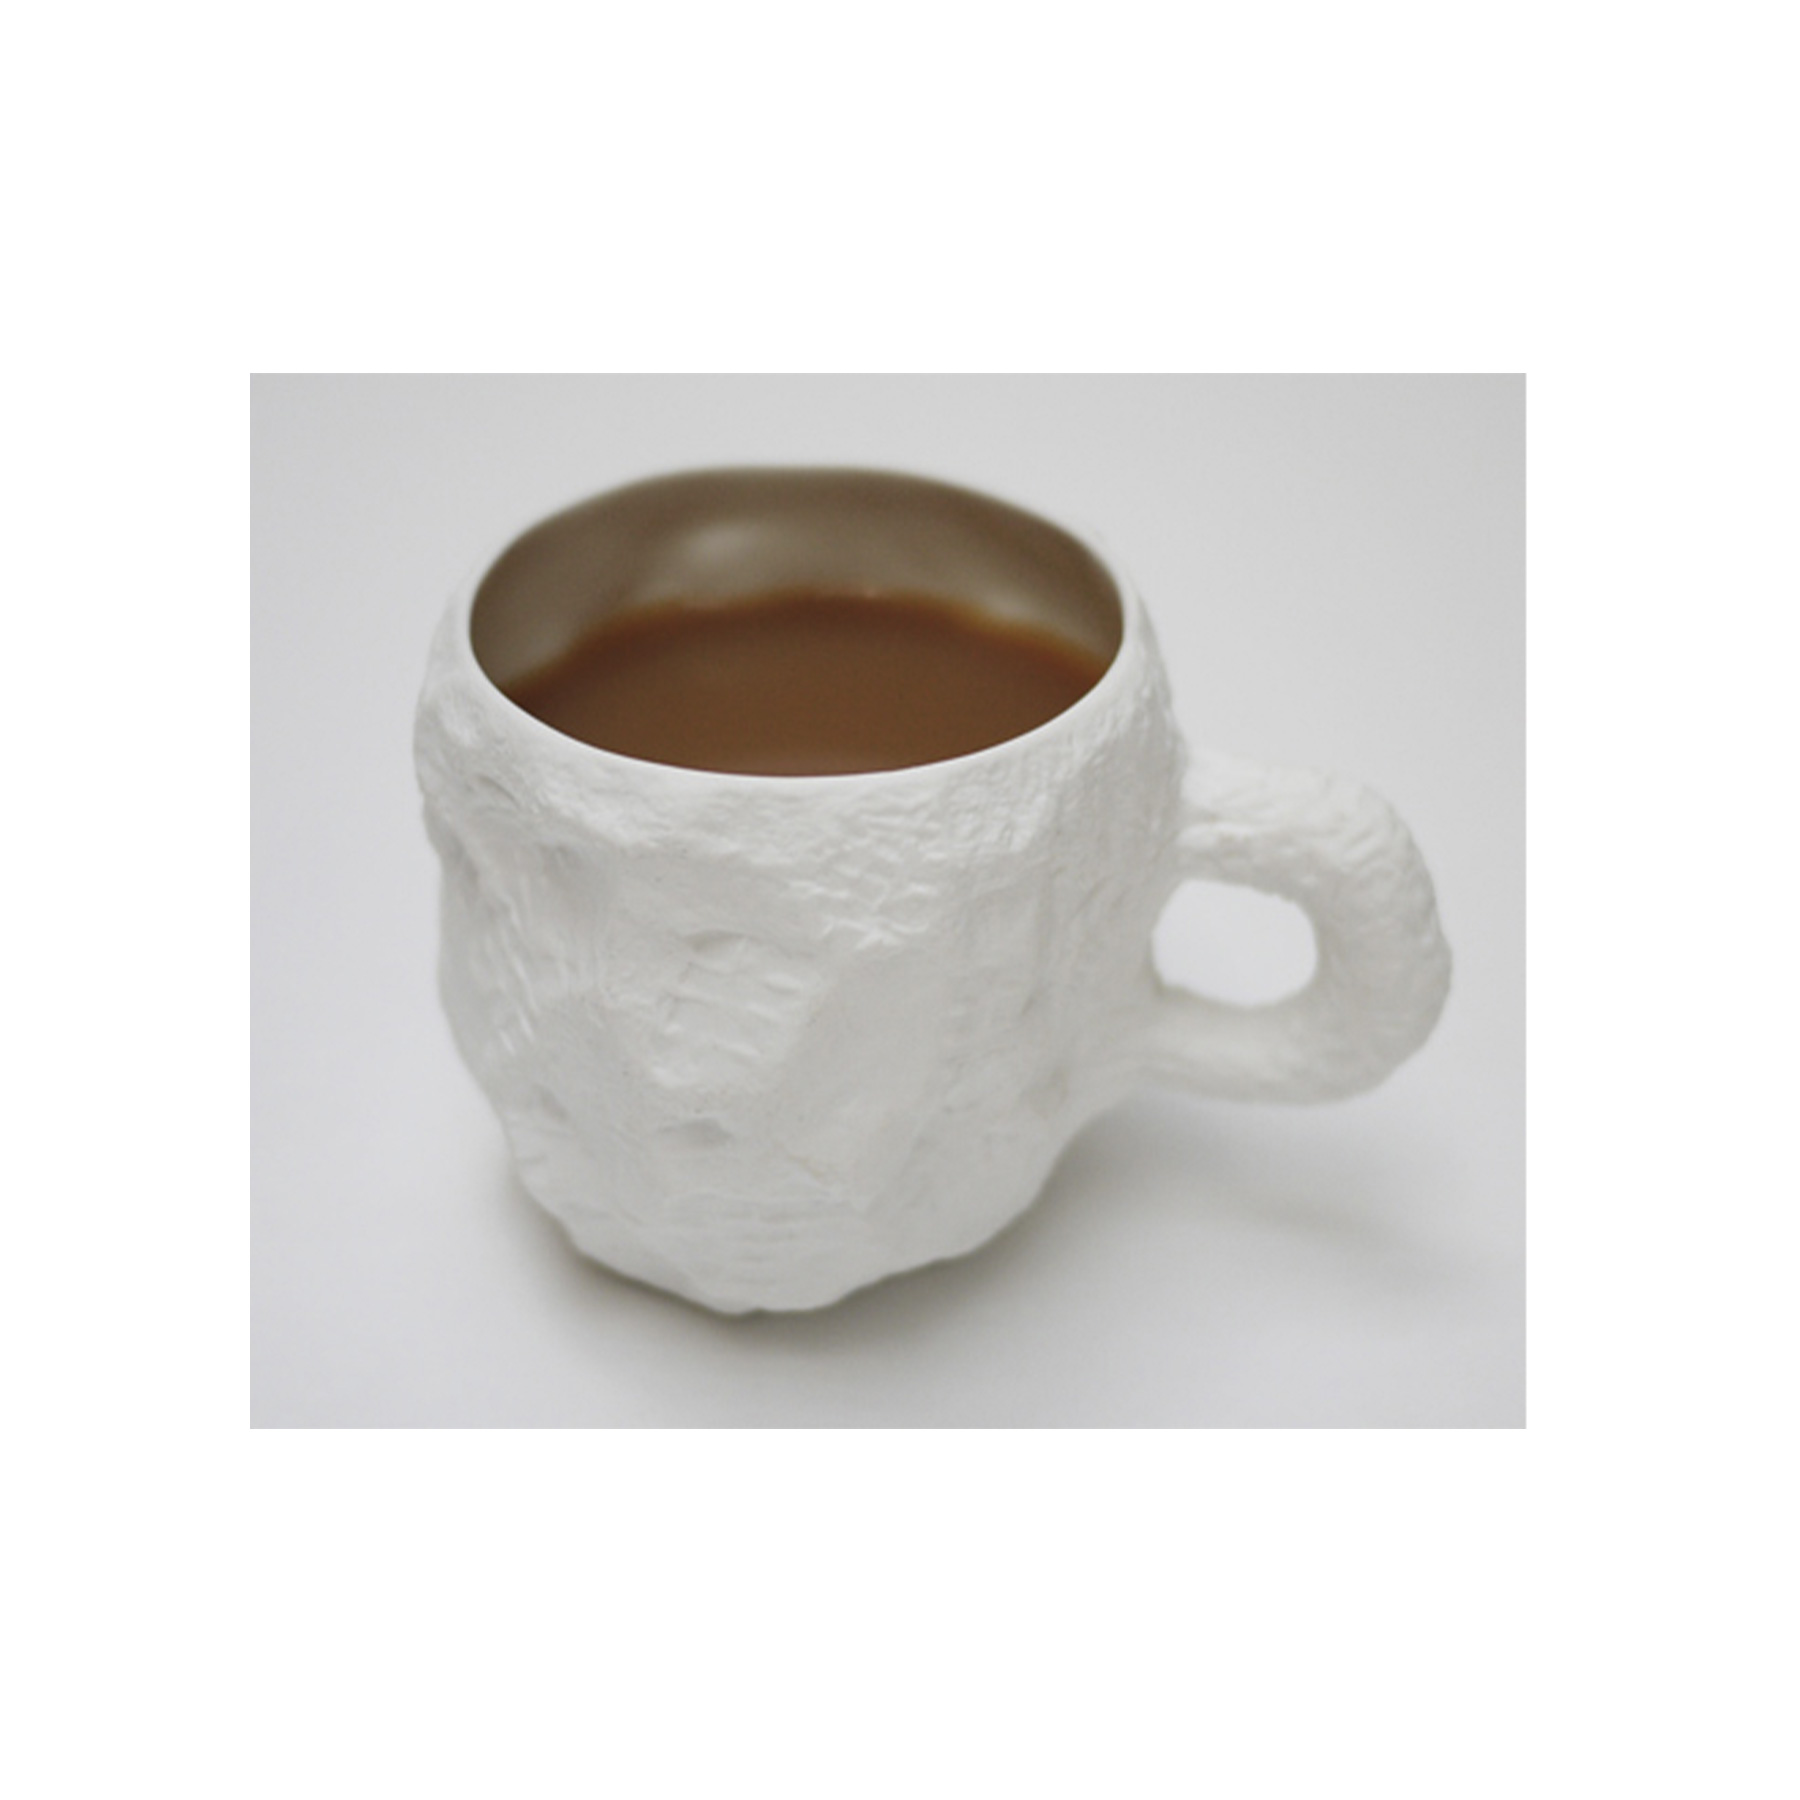 Crockery White Mug - <p>A collection of fine bone china tableware slip-cast from plaster models carved by hand, with glazed interior for functionality and raw exterior reflecting the modest surface texture of the plaster original. The process of slip-casting begins with the creation of a three-dimensional model of the design known as a master by a professional model-maker, from which the production mould is cast. Crockery bypasses this process by placing the responsibility of both designer and model-maker in the hands of Max Lamb. Using the tools of a stonemason Max chips and carves a solid block of plaster to make a series of tableware, the design of each formed quite simply out of their own making. Microwave and dishwasher safe.</p>    Matter of Stuff